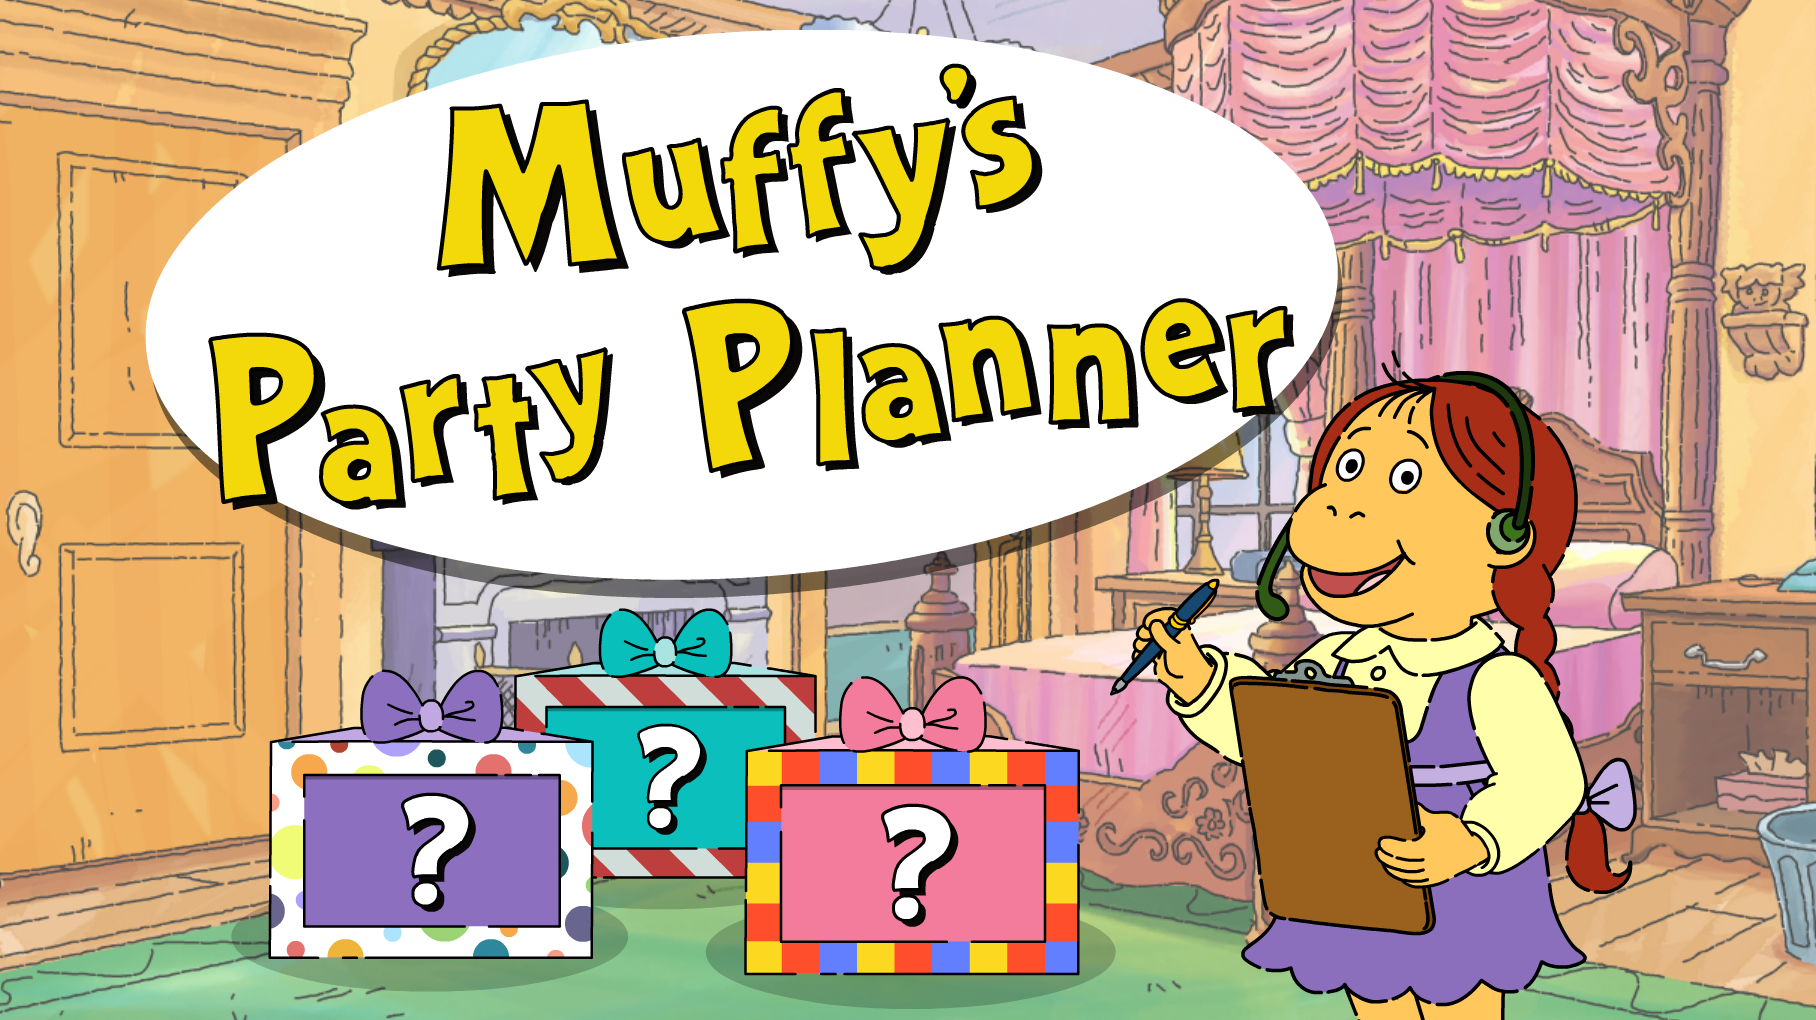 Muffy's Party Planner